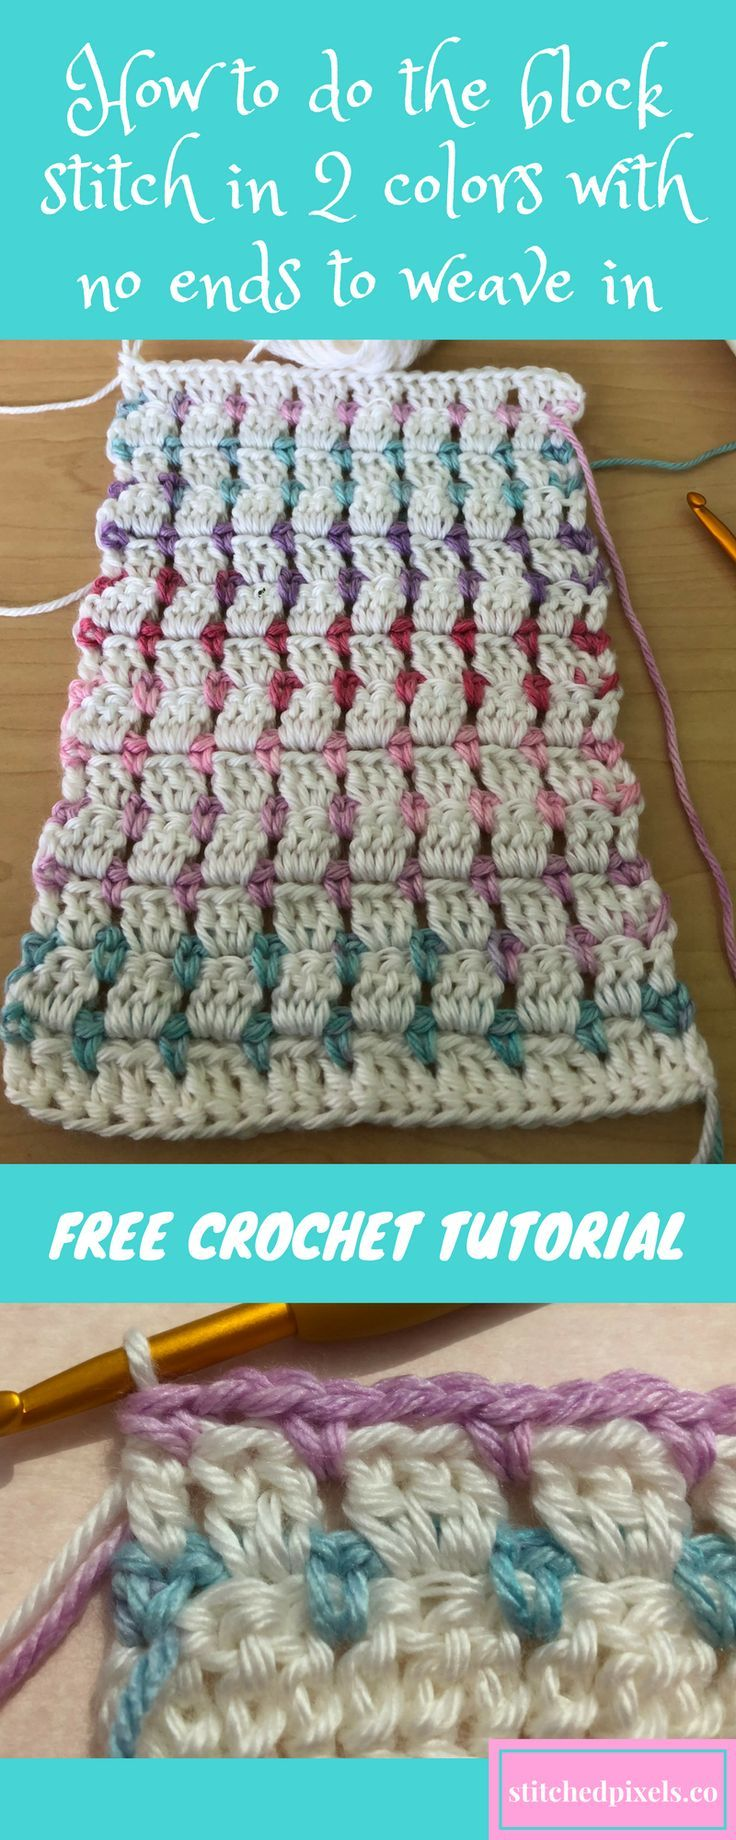 Tired of weaving in ends? Try this new free crochet tutorial on how ...